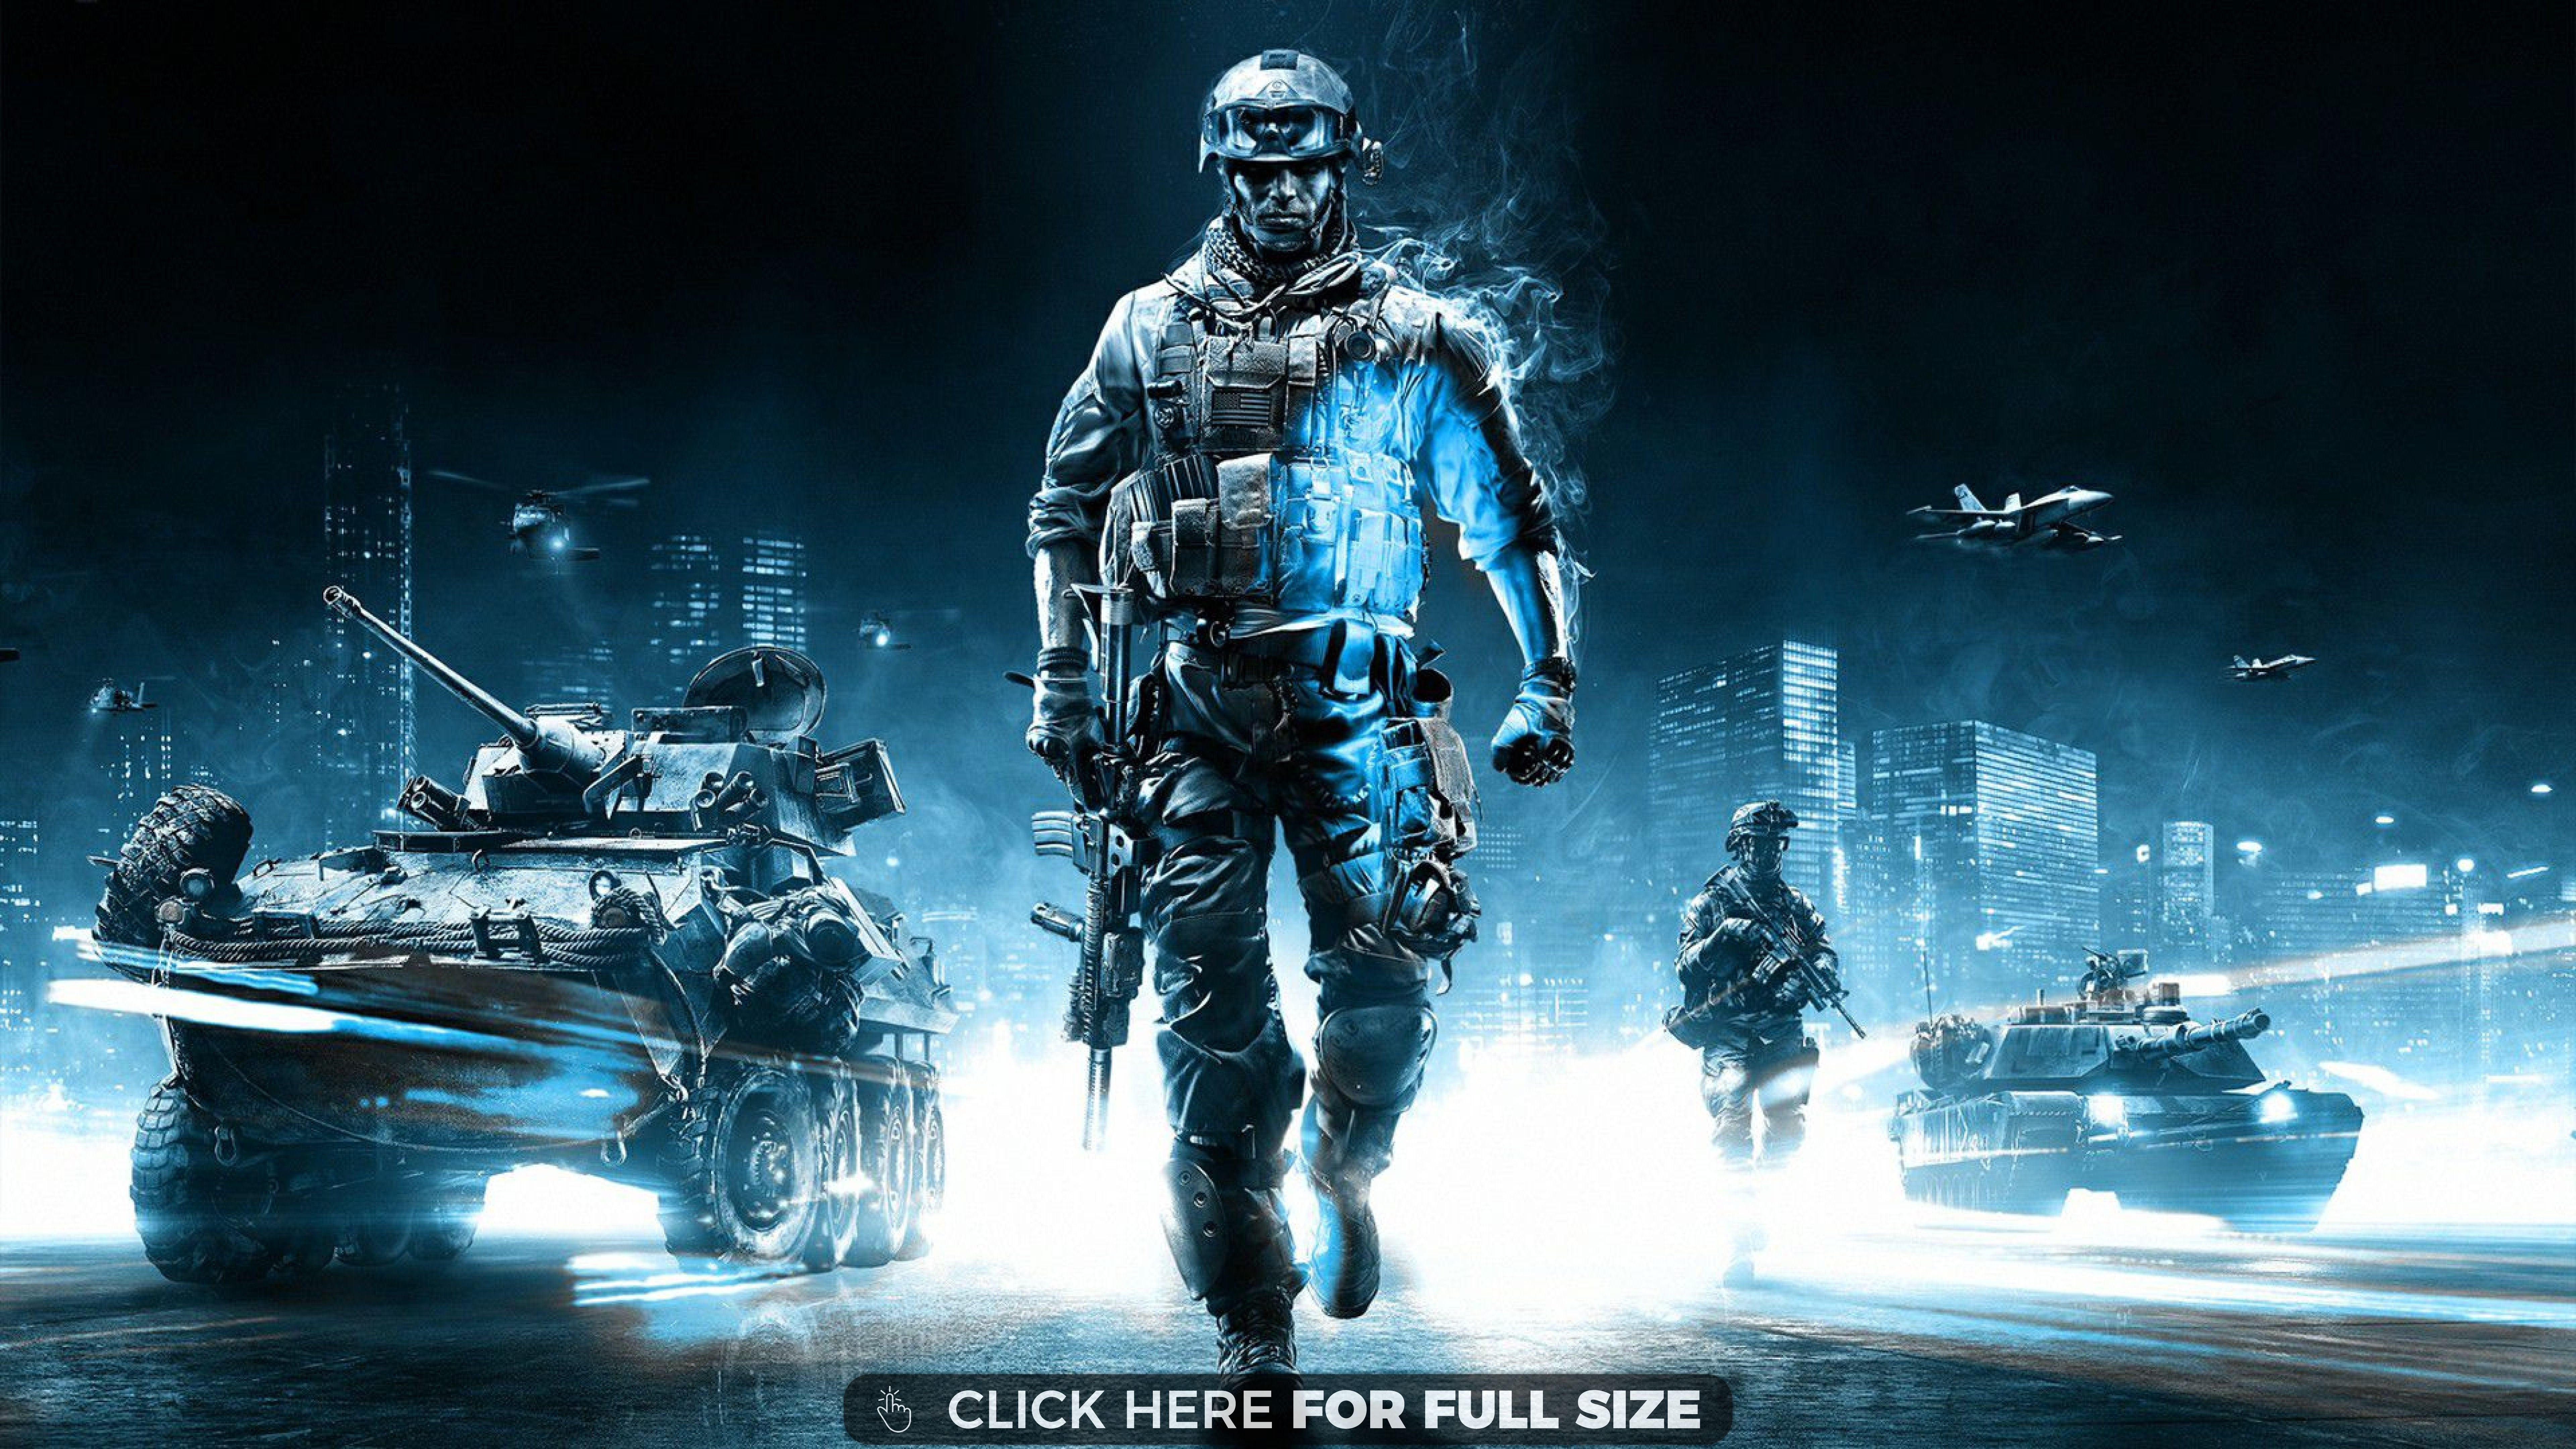 Battlefield 3 Wallpaper With Images Gaming Wallpapers Hd Best